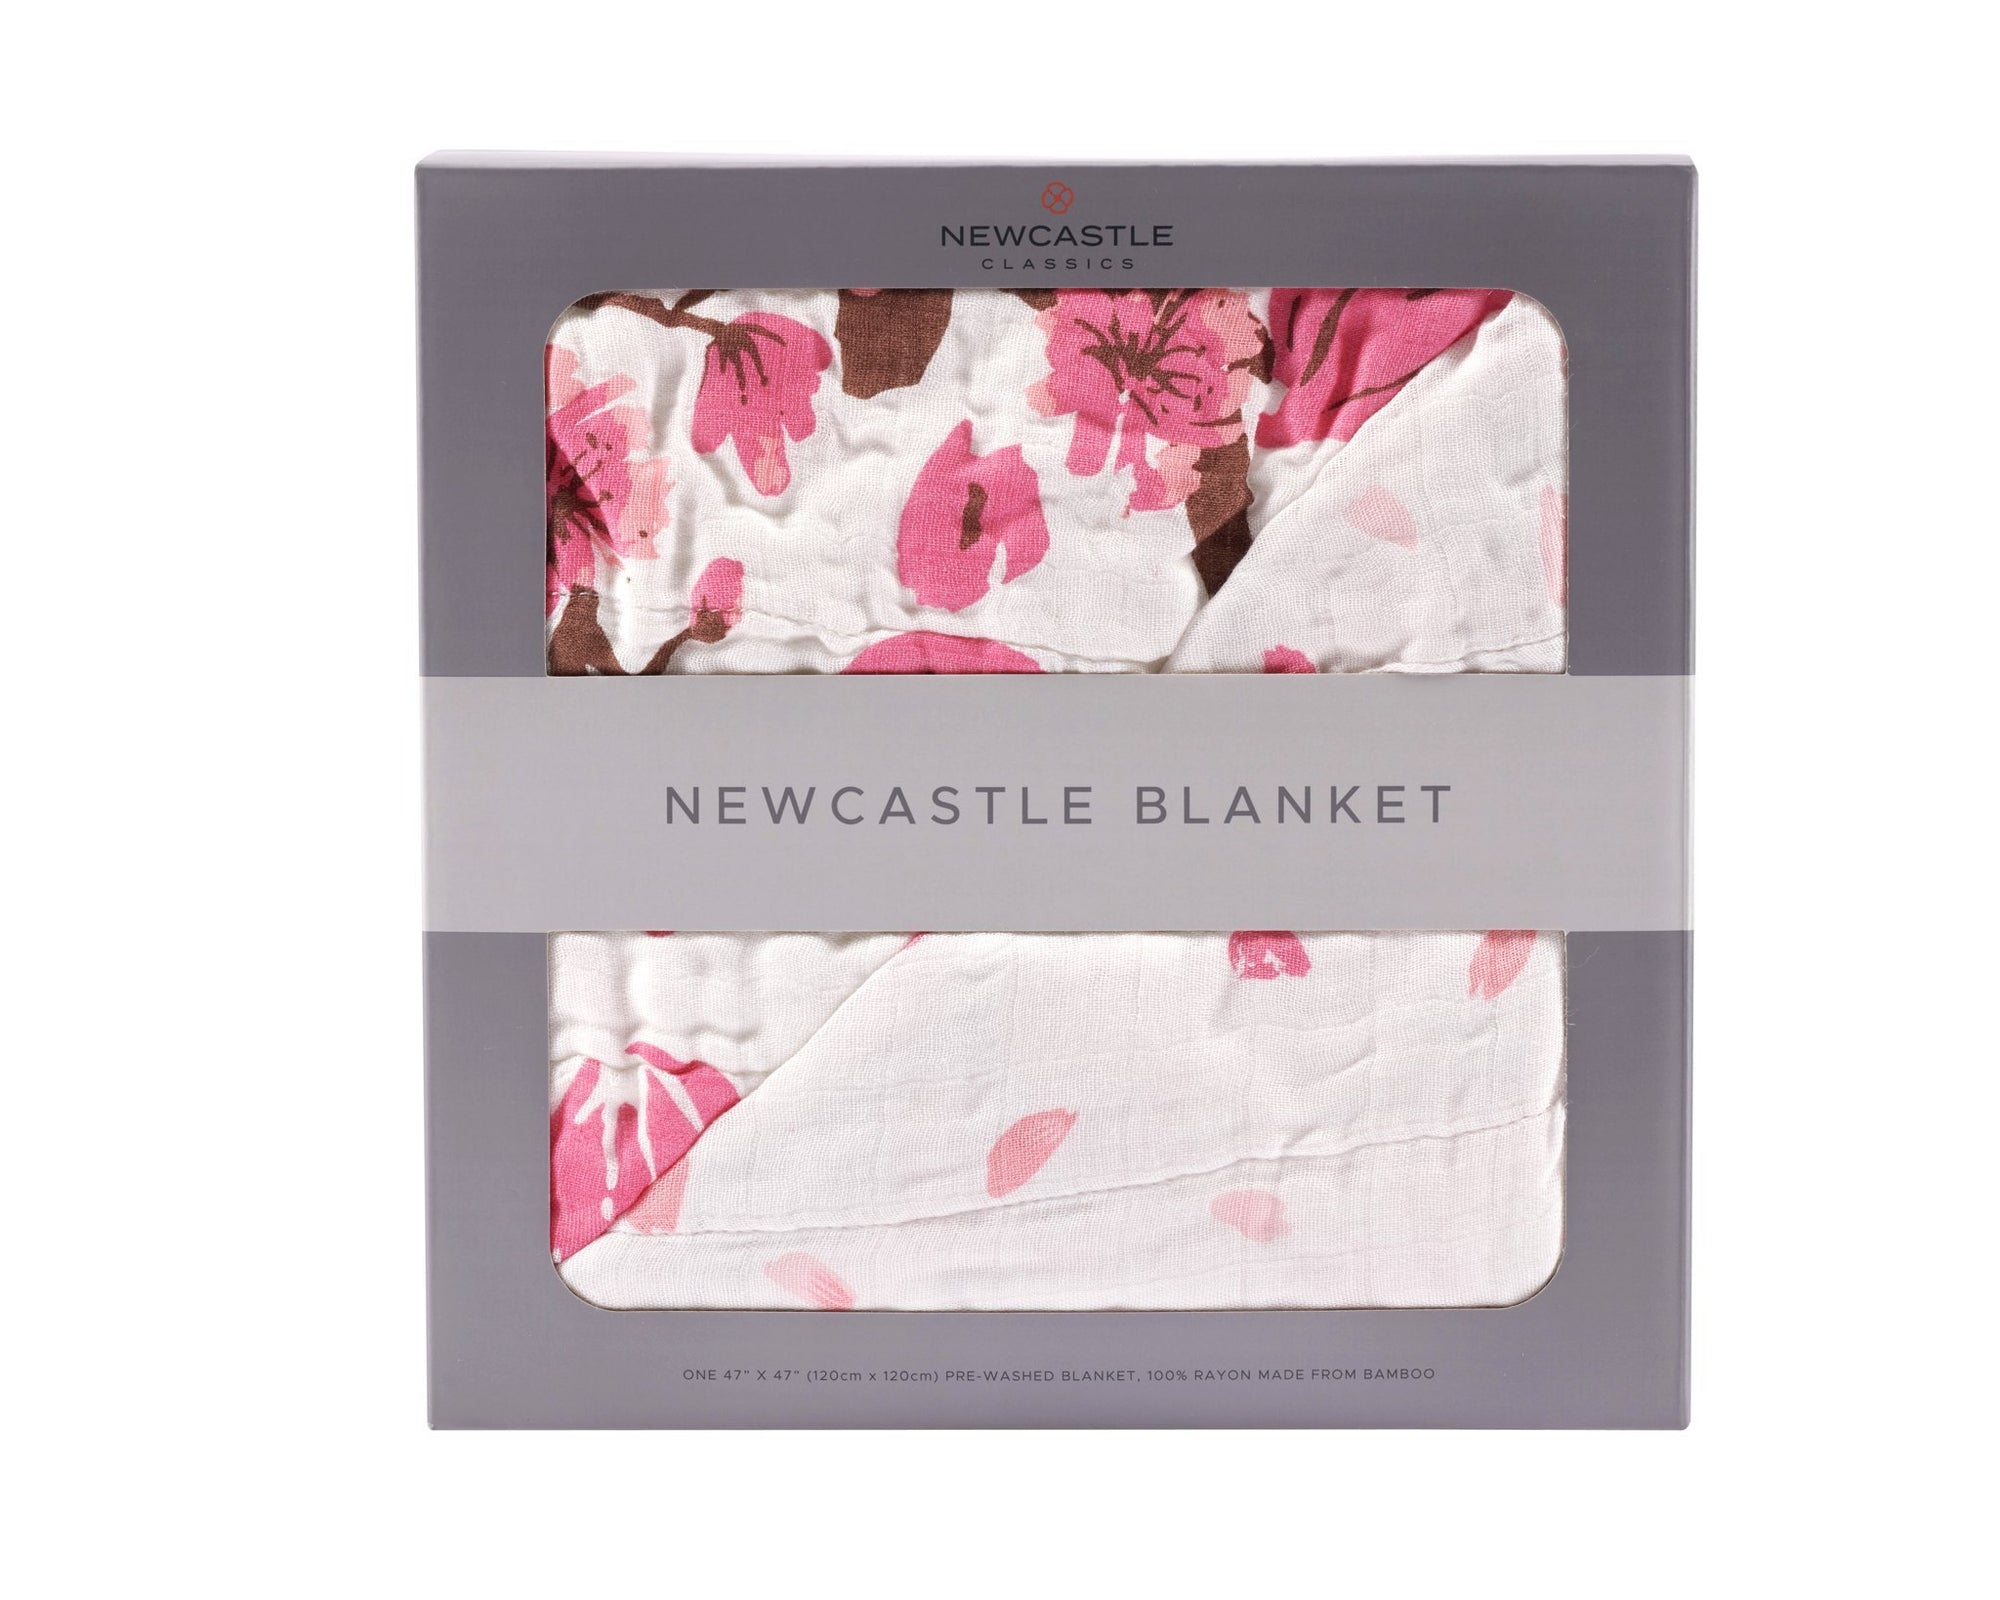 Cherry Blossom Newcastle Blanket - Baby World Inc